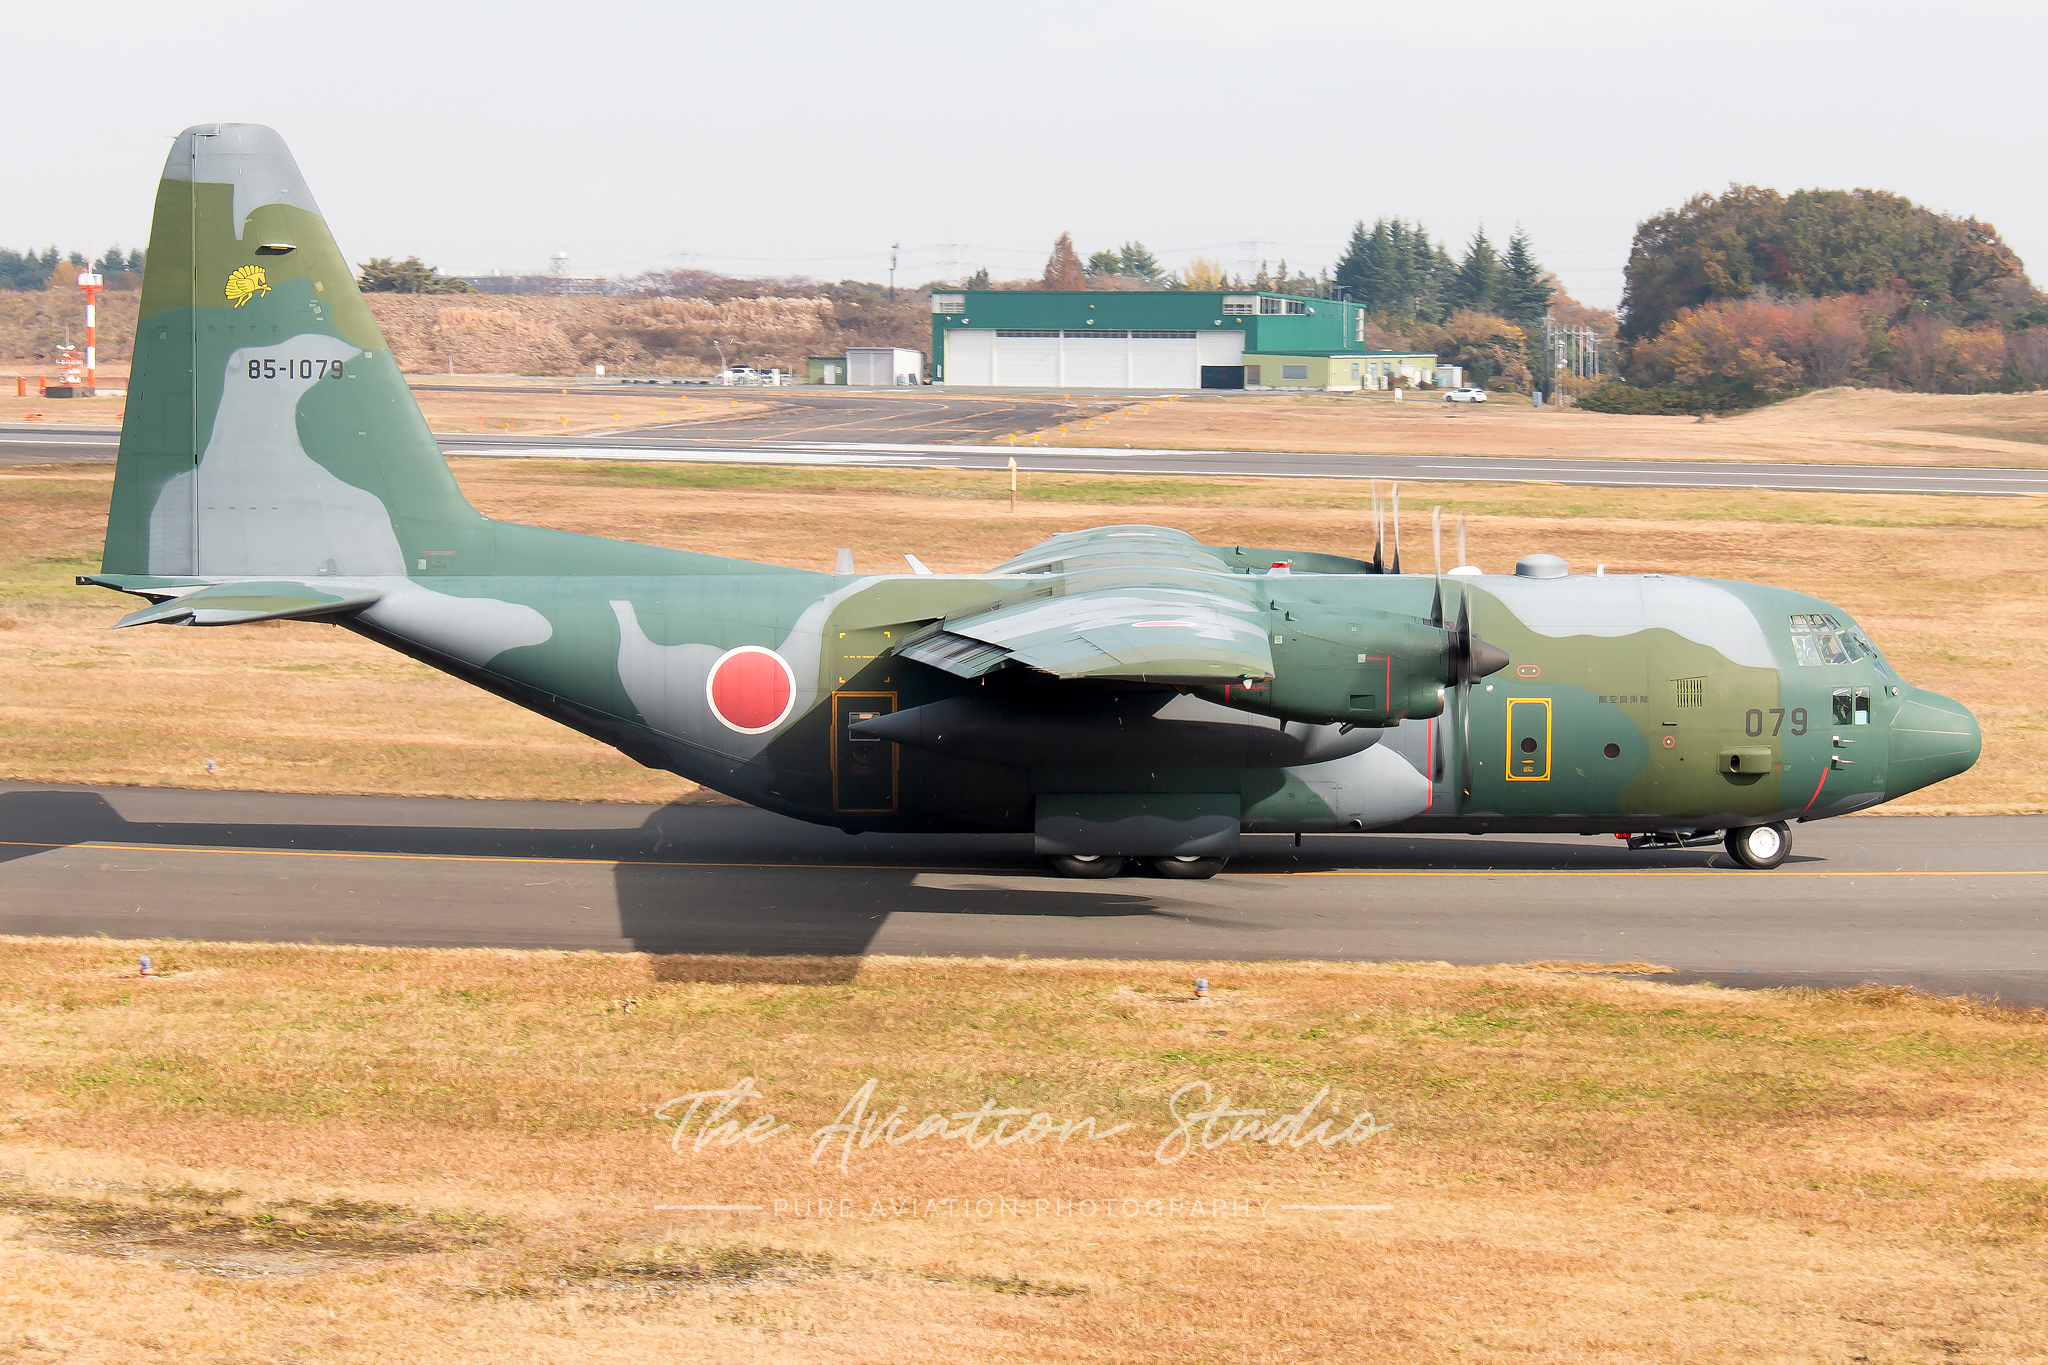 Lockheed C-130H Hercules 85-1078 taxiing at Iruma (Image: Brock Little)